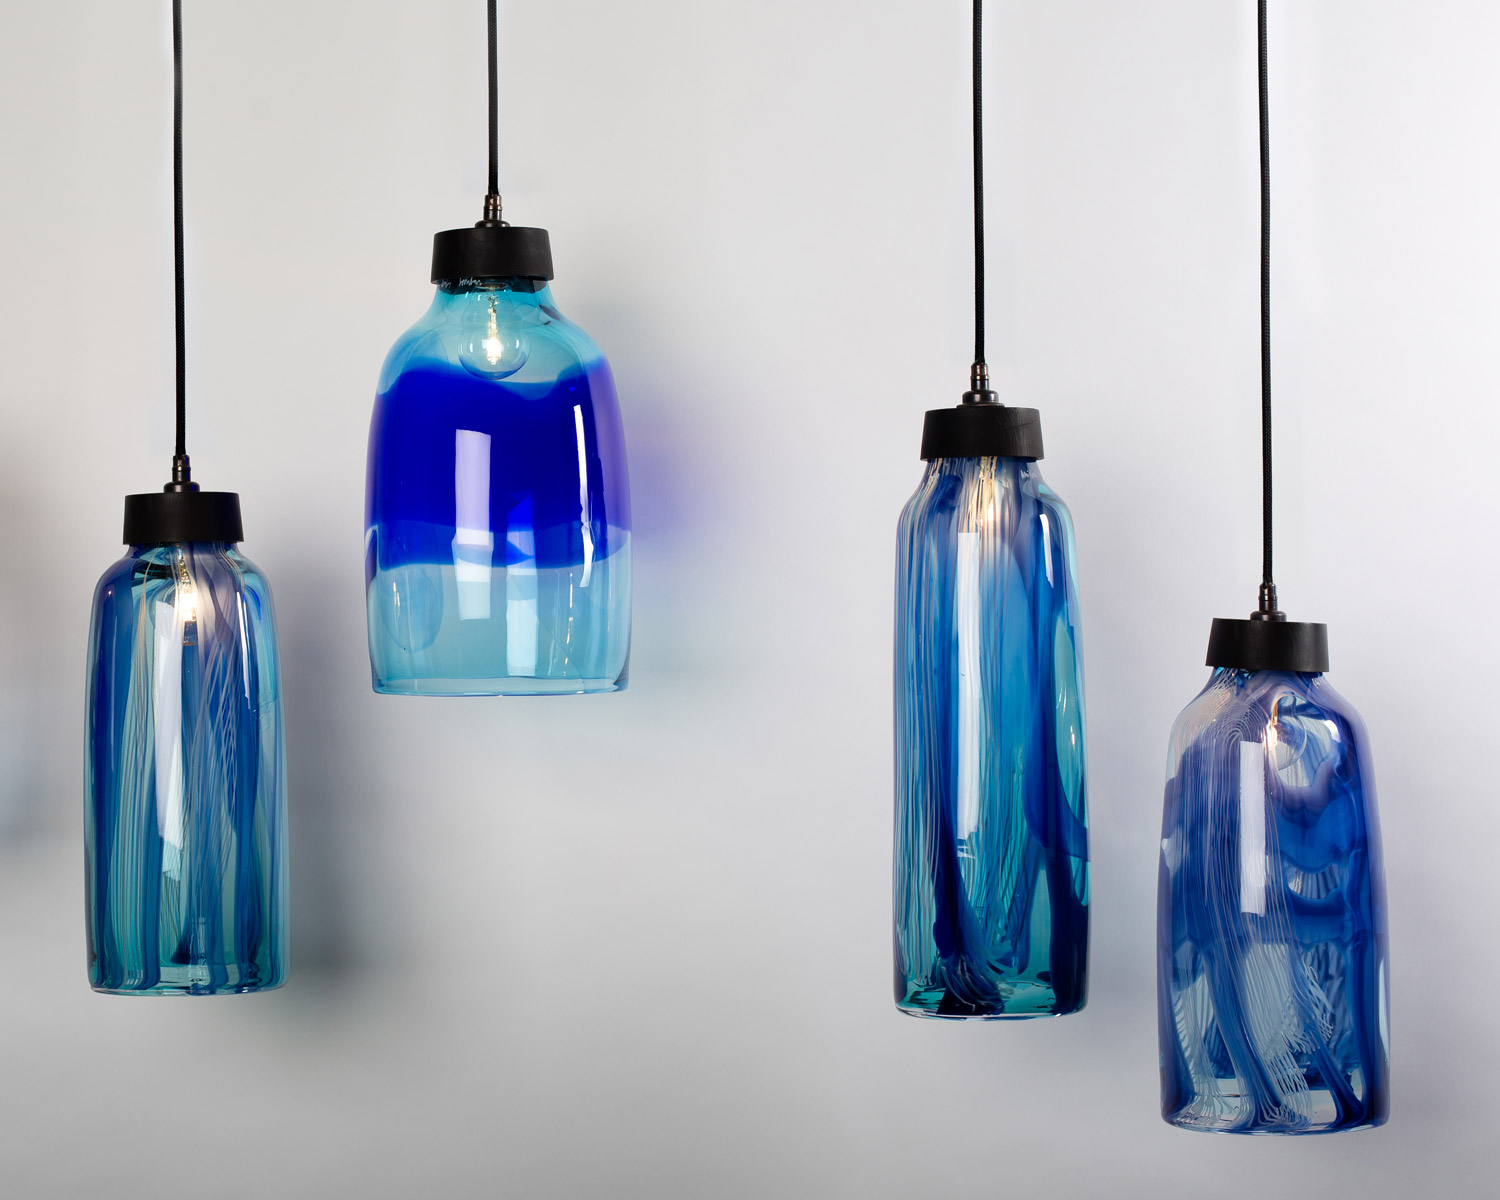 Present collect at contemporary applied arts town country image hand blown blue glass lampshades by michael ruh 980 each courtesy of caa aloadofball Image collections